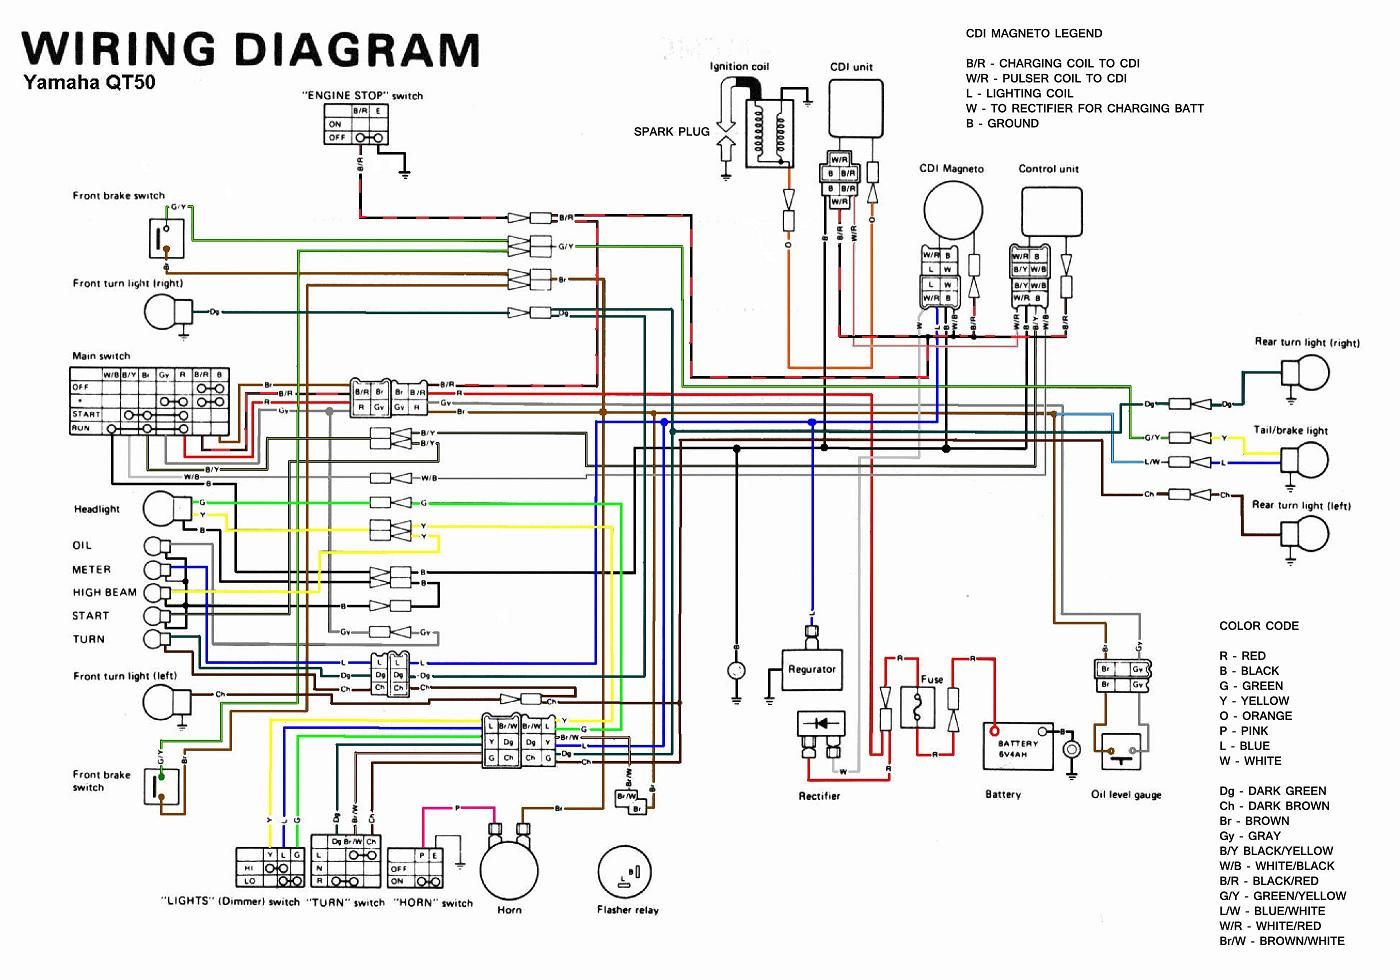 hight resolution of yt60 wiring diagram just wiring diagramyt60 wiring diagram electrical wiring diagram yt60 wiring diagram